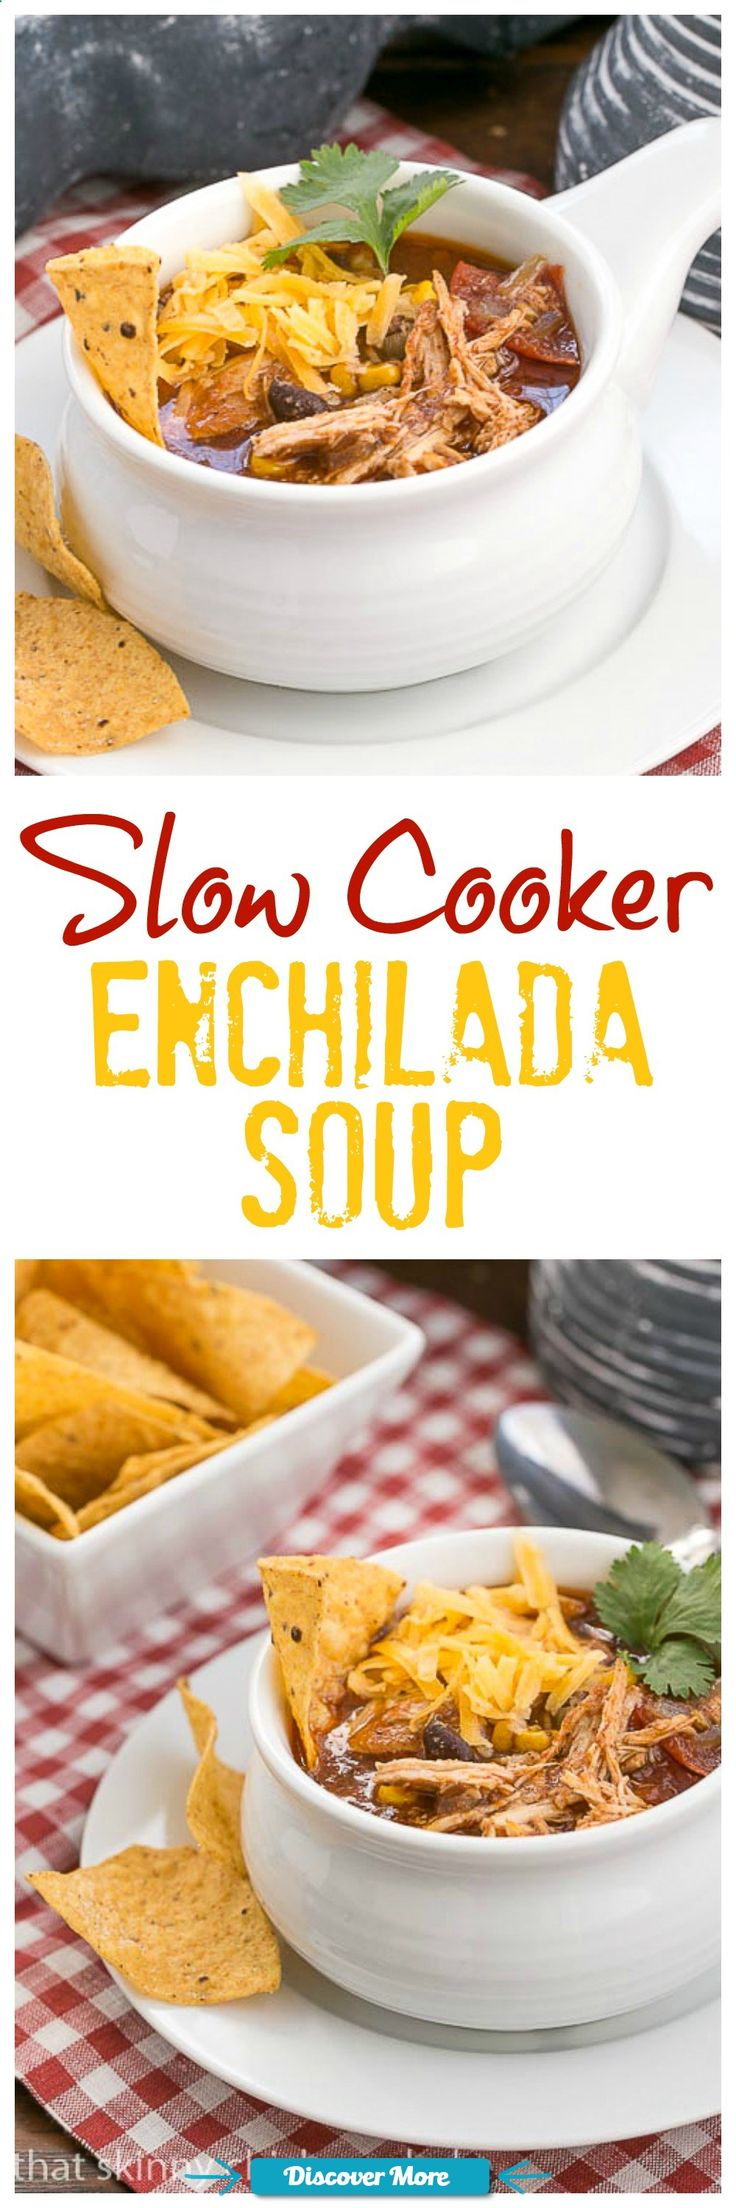 Slow Cooker Chicken Enchilada SoupSlow Cooker Chicken Enchilada Soup | A spicy, comforting Tex-Mex soup That Skinny Chick Can Bake!!! #slowcooker #slowcook #slowcookerrecipes #slowcookerchicken